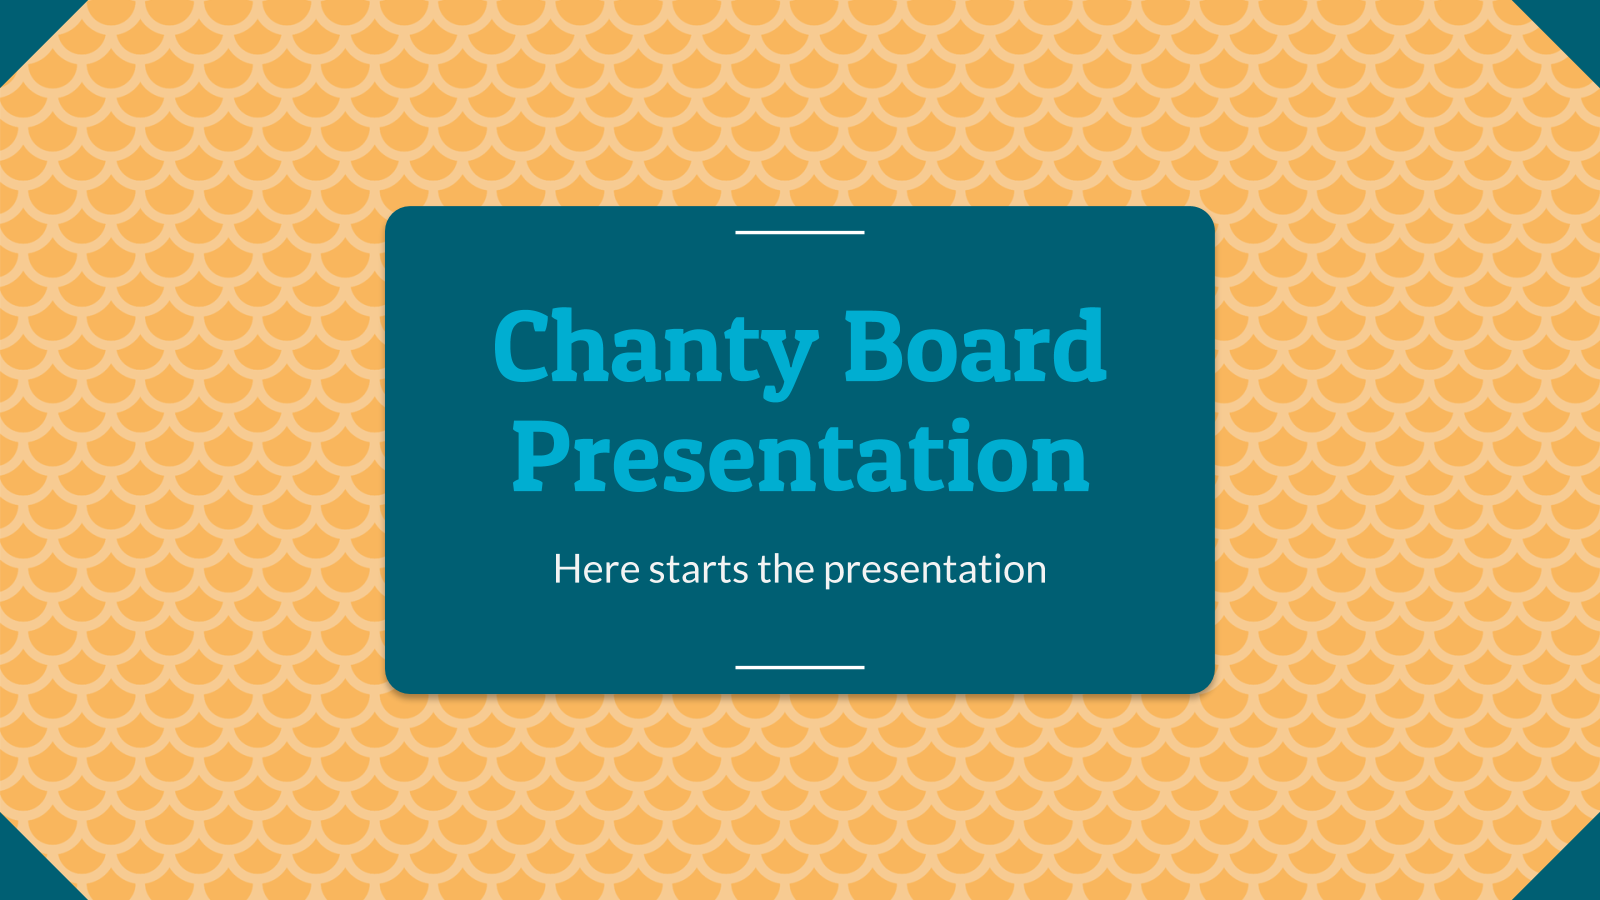 Chanty Board presentation template